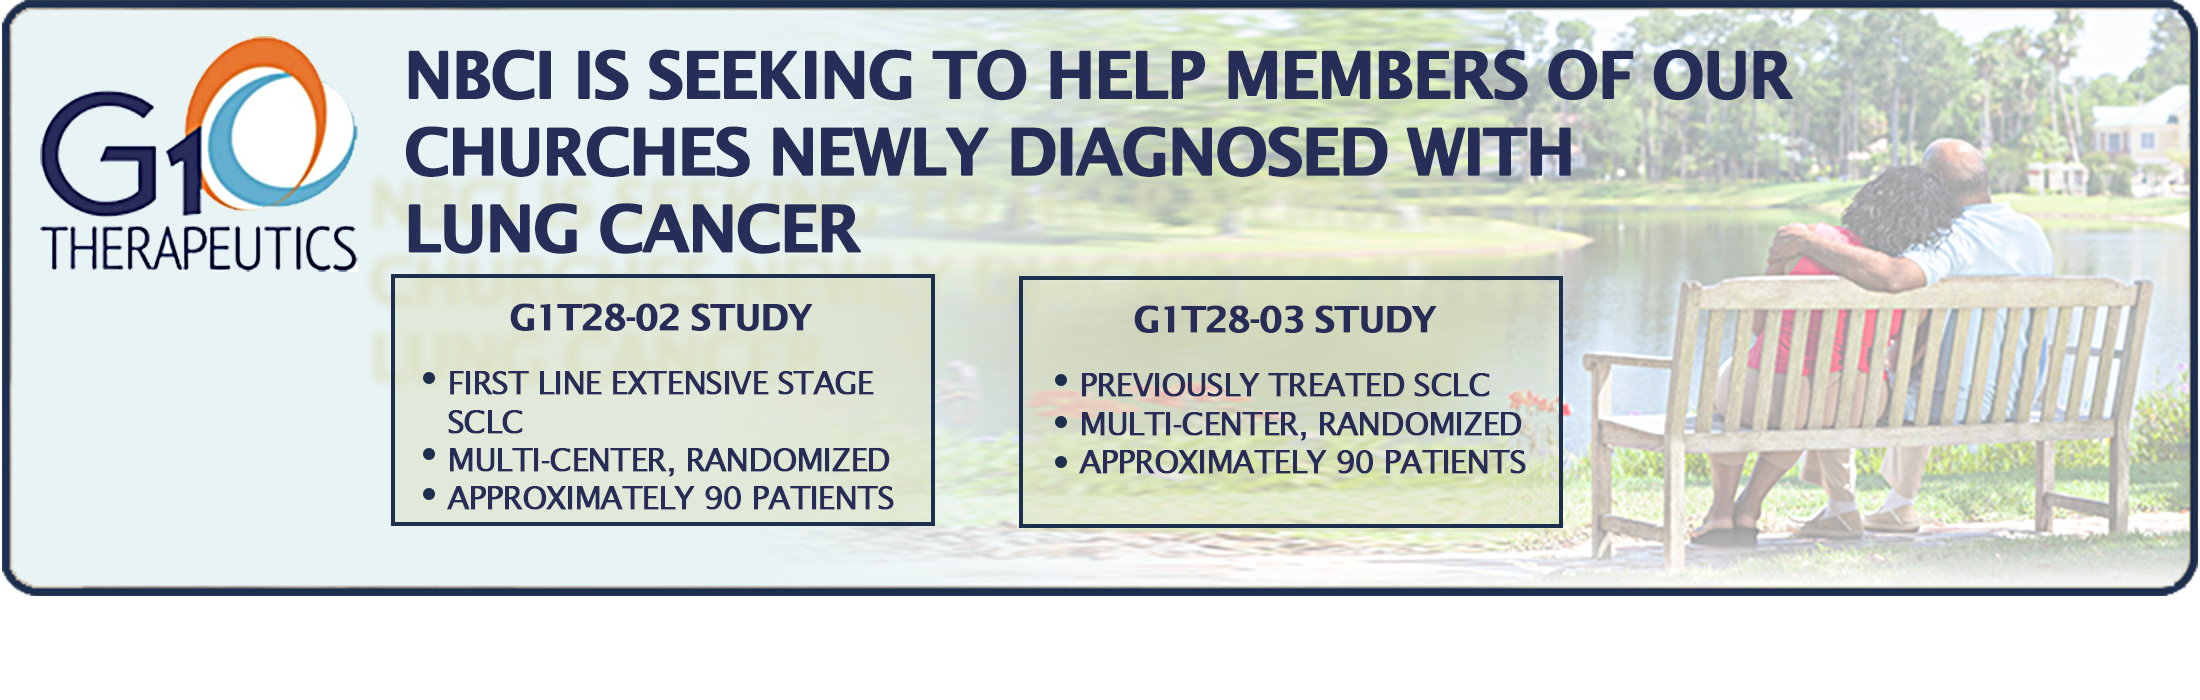 NBCI Wants to Help Our Church Members Newly Diagnosed With Lung Cancer